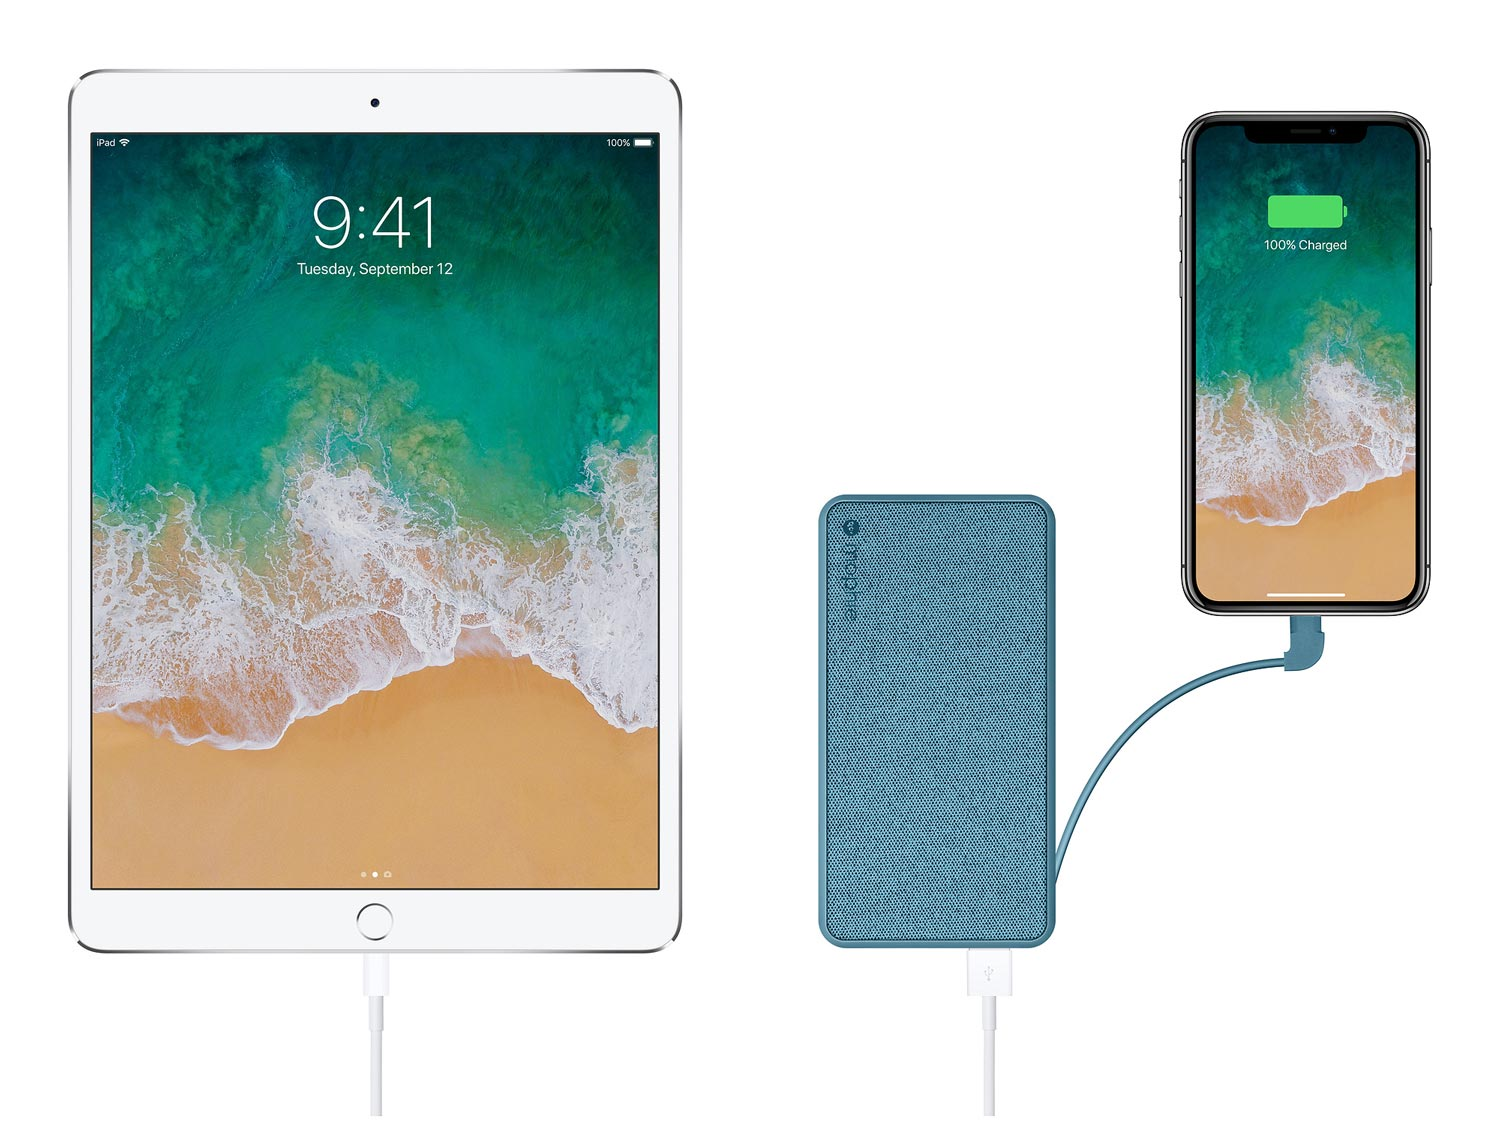 New Mophie Powerstation pack with iPad and iPhone X